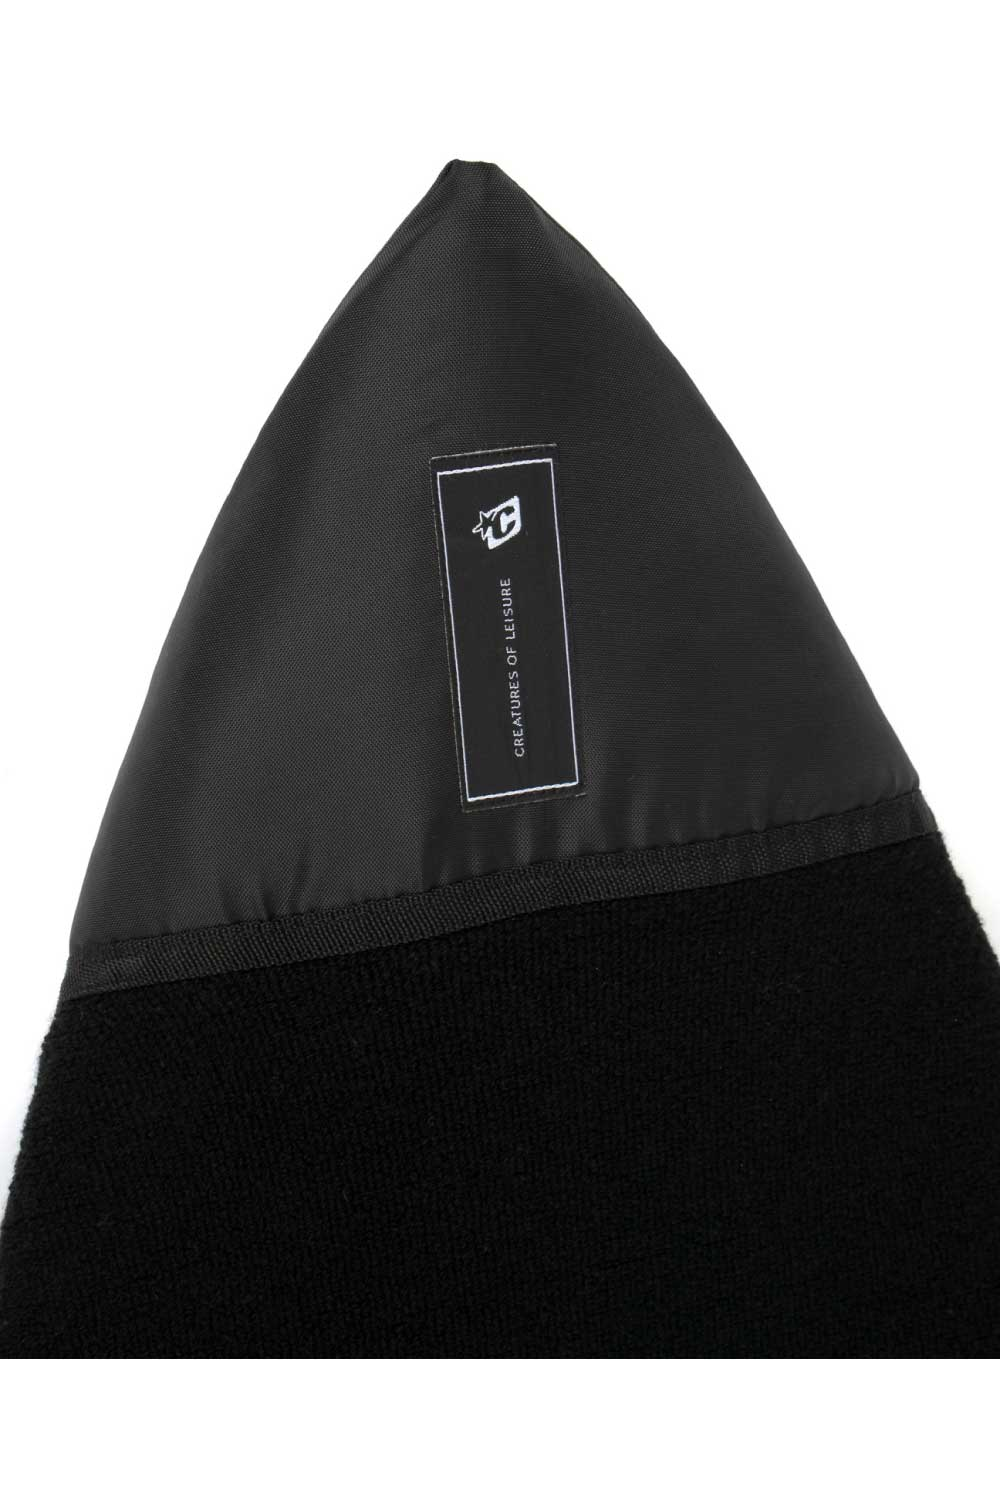 Creatures of Leisure Shortboard Icon Surfboard Sock (Sox) Black Cover